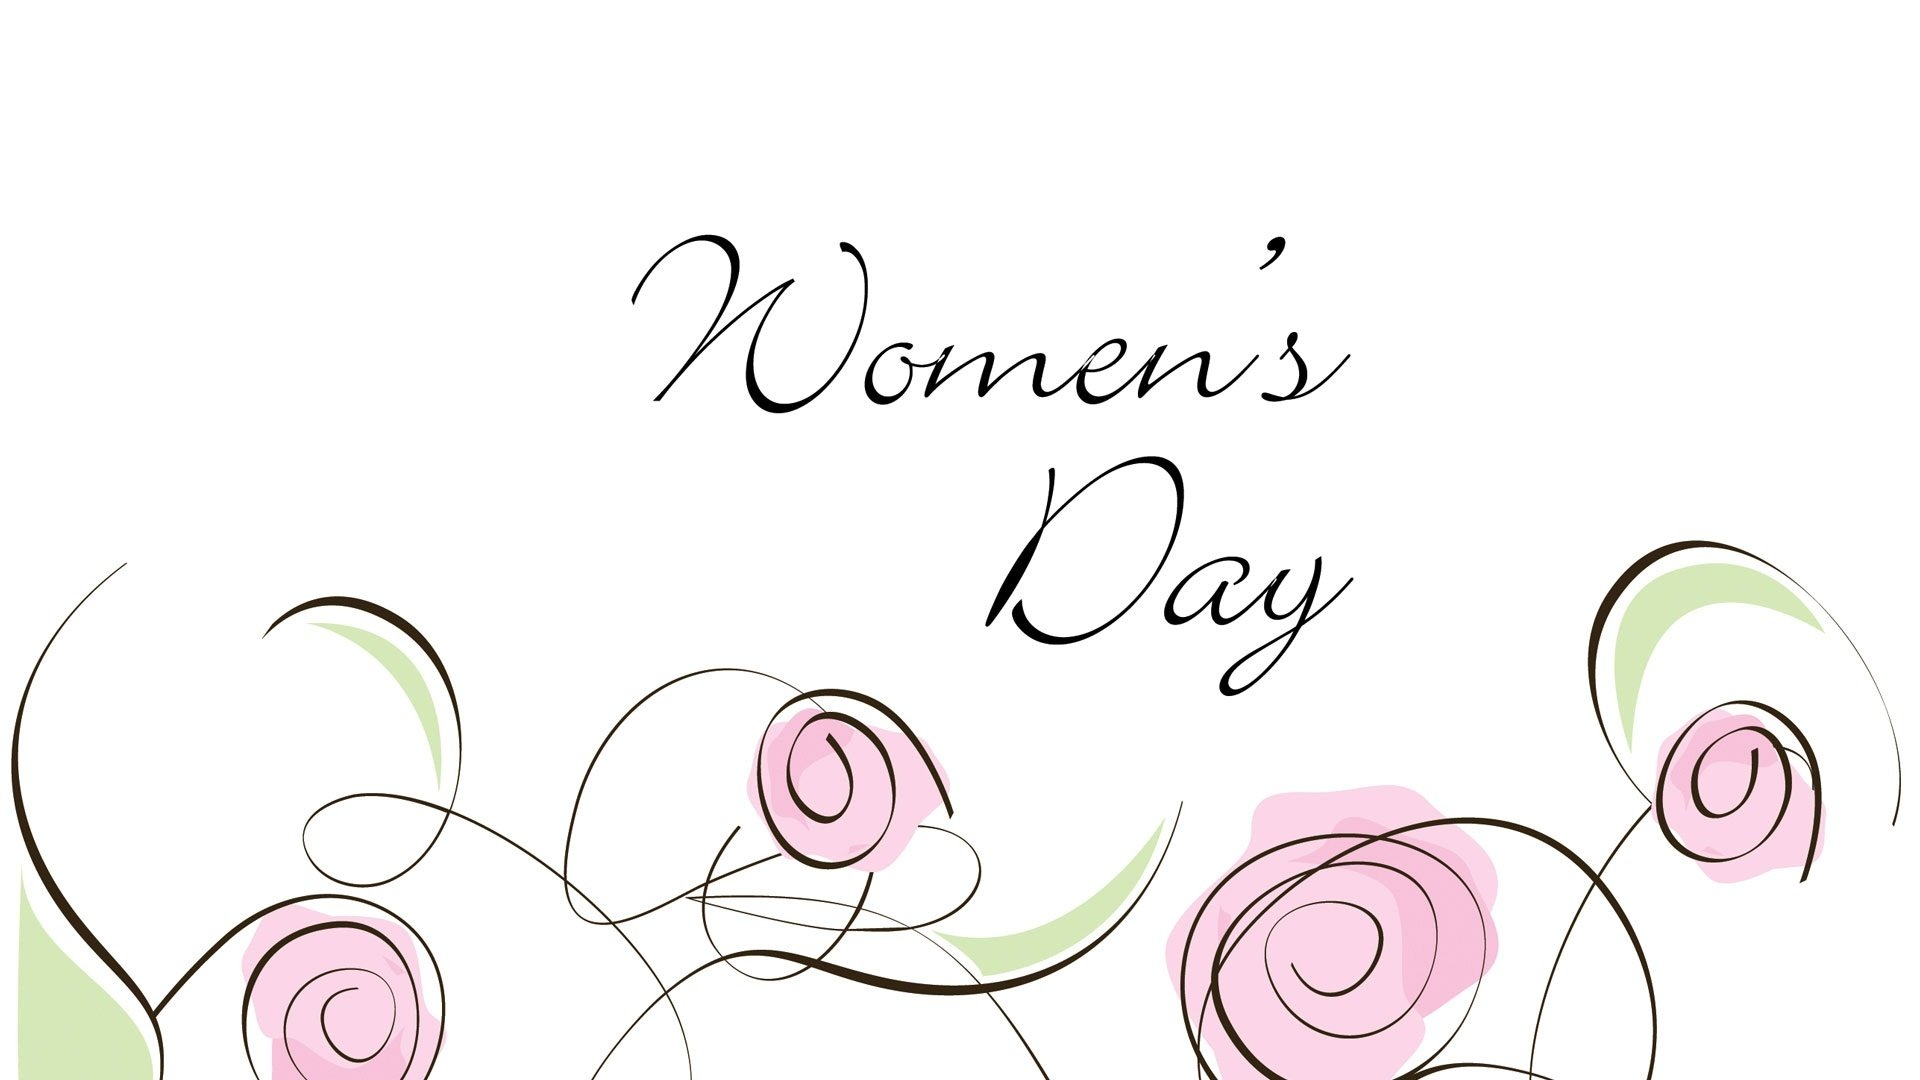 Feiertage - Women's Day  Aussage Minimalist Rose Blume Wallpaper